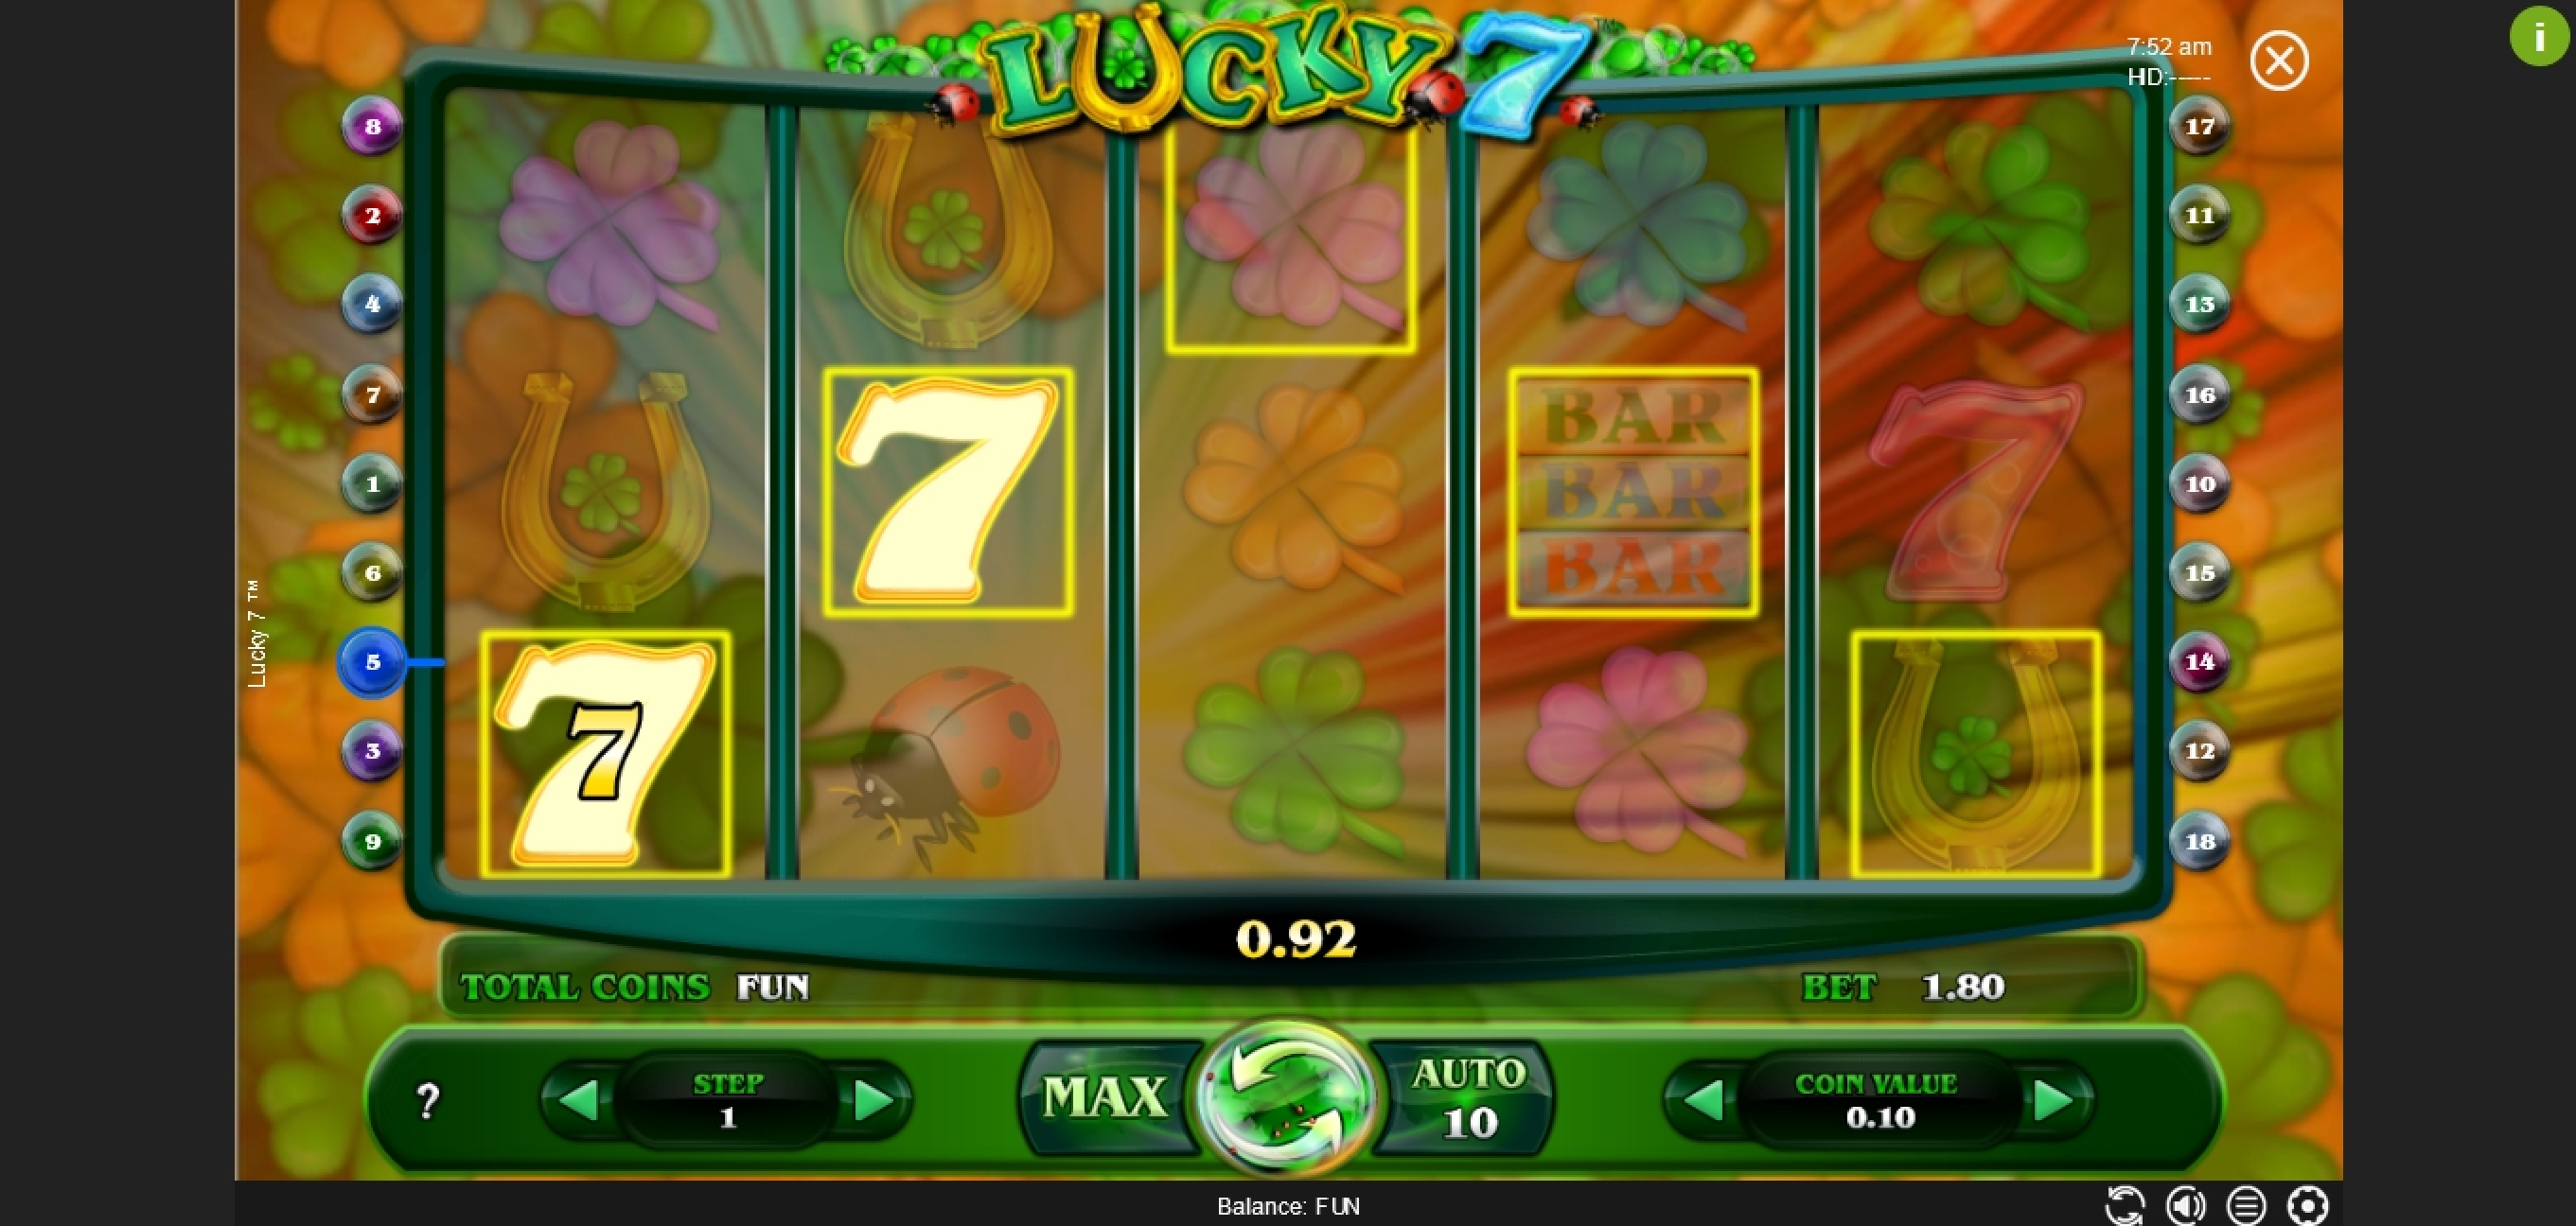 Win Money in Lucky 7 (Espresso Games) Free Slot Game by Espresso Games